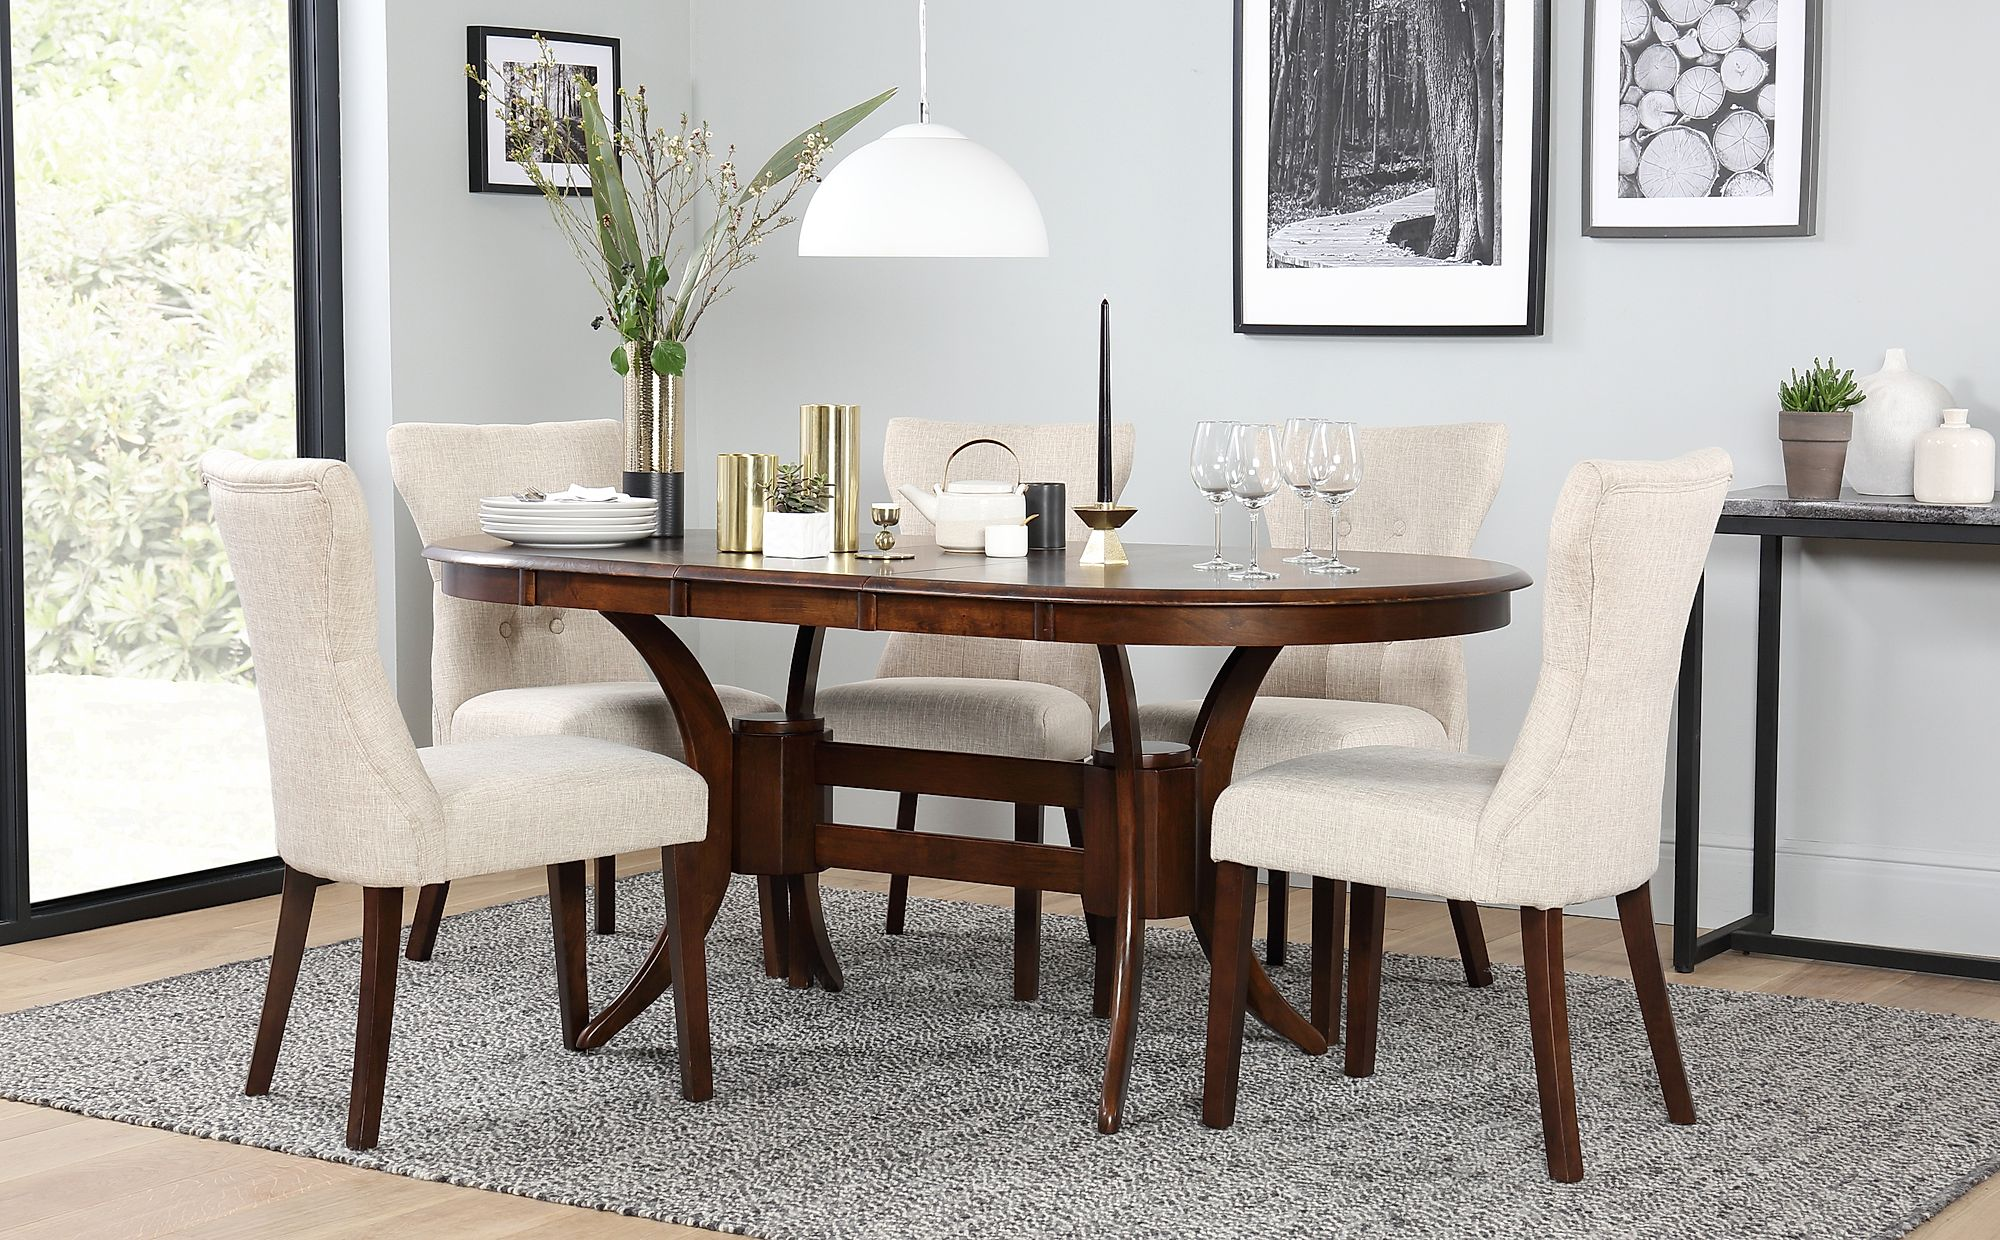 Awesome Townhouse Oval Dark Wood Extending Dining Table With 4 Bewley Oatmeal Chairs Onthecornerstone Fun Painted Chair Ideas Images Onthecornerstoneorg